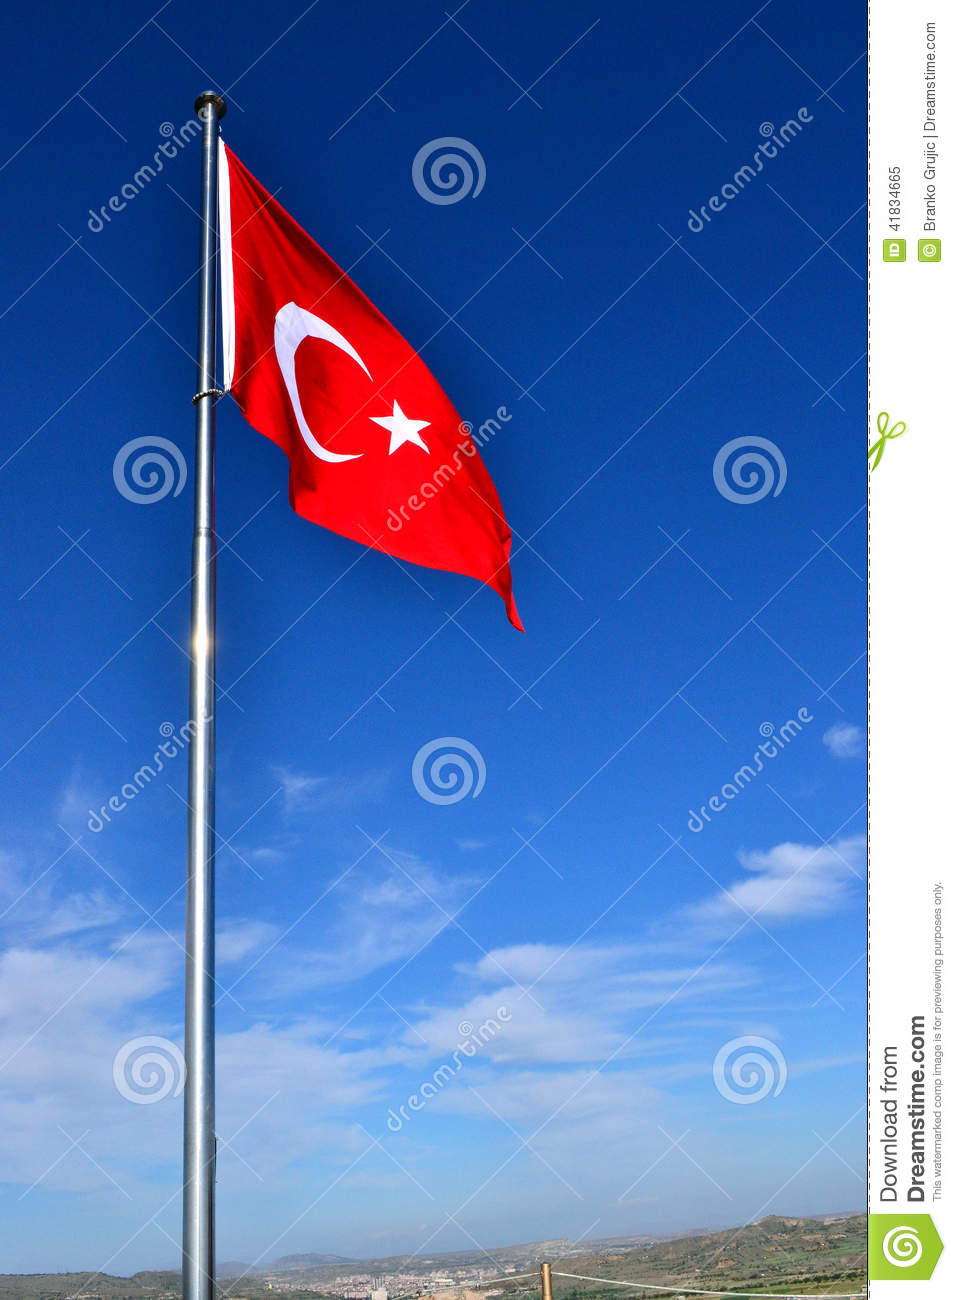 The Flag of Turkey stock image  Image of moon, national